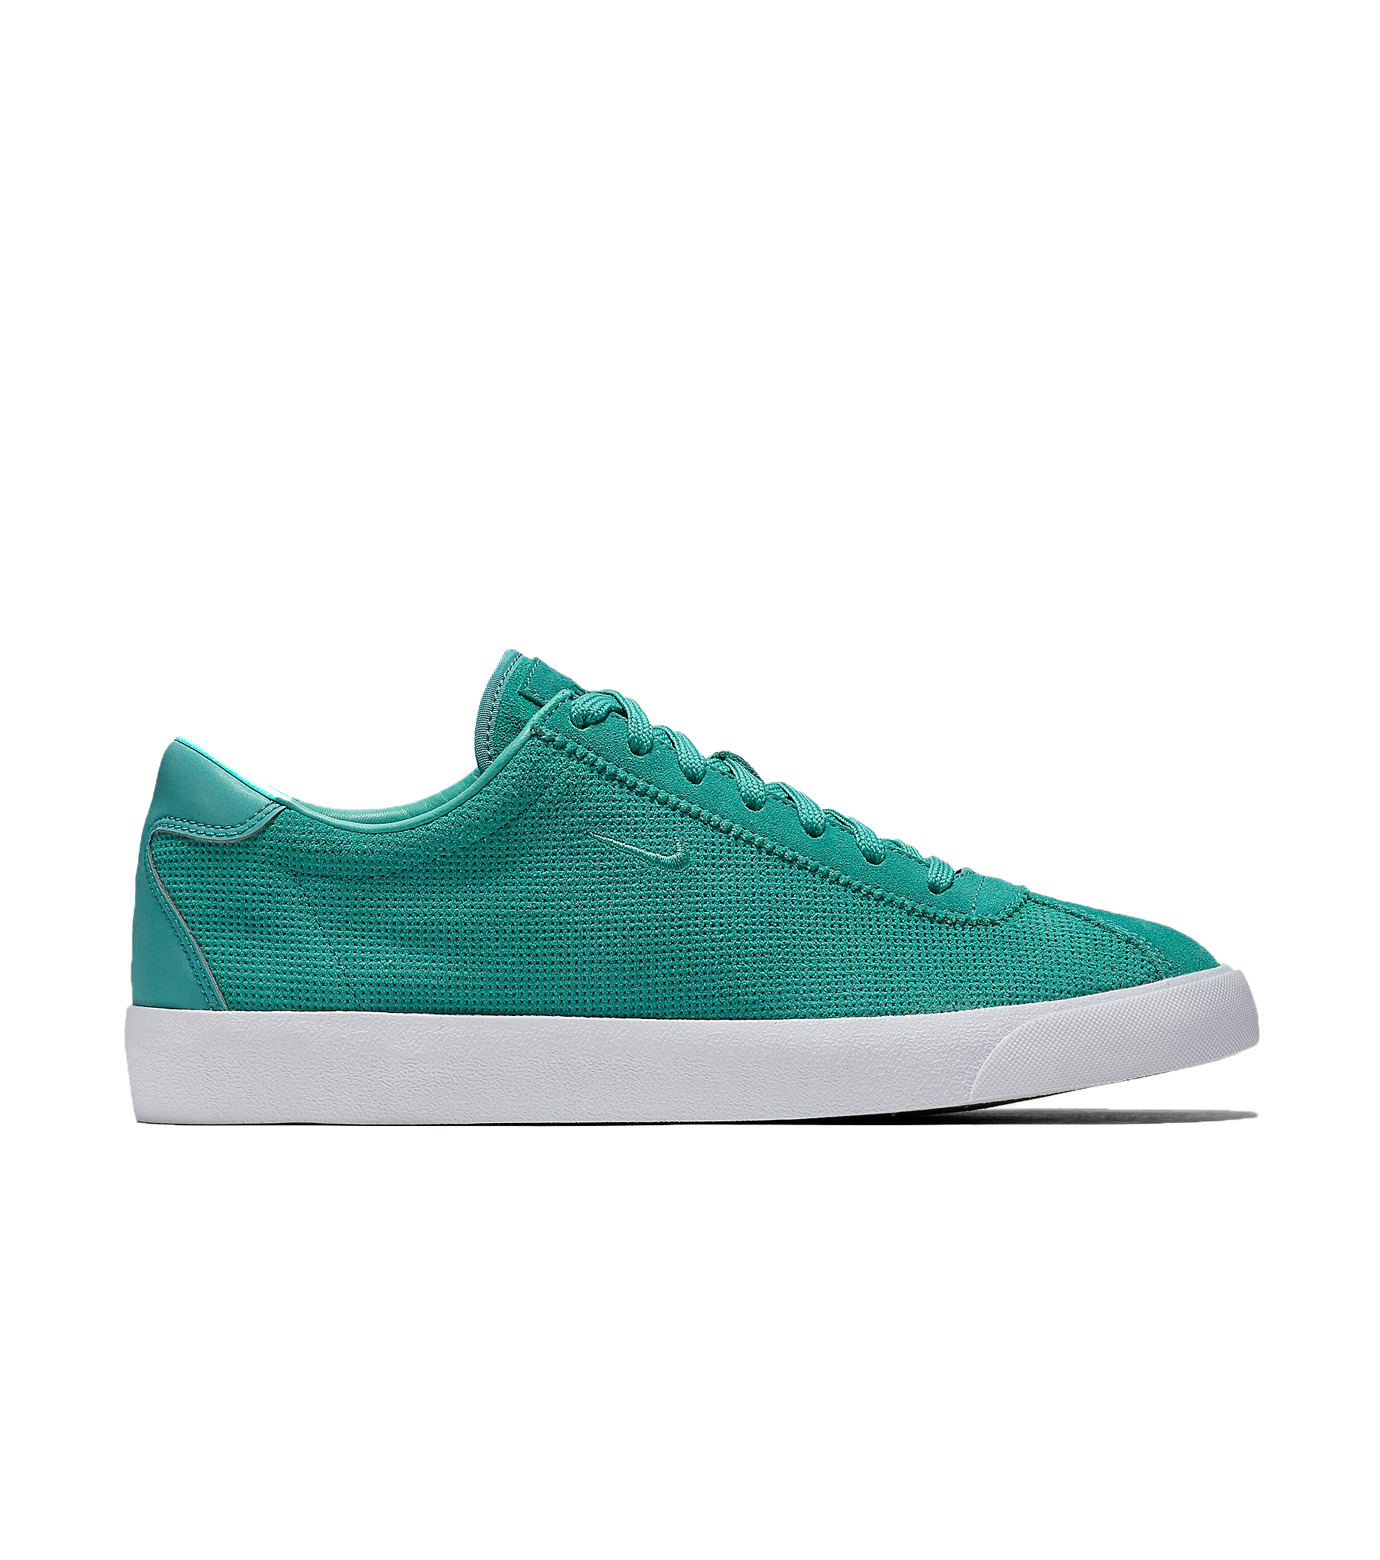 NIKE(ナイキ)のMATCH CLASSIC SUEDE-GREEN(シューズ/shoes)-864718-300-22 拡大詳細画像1